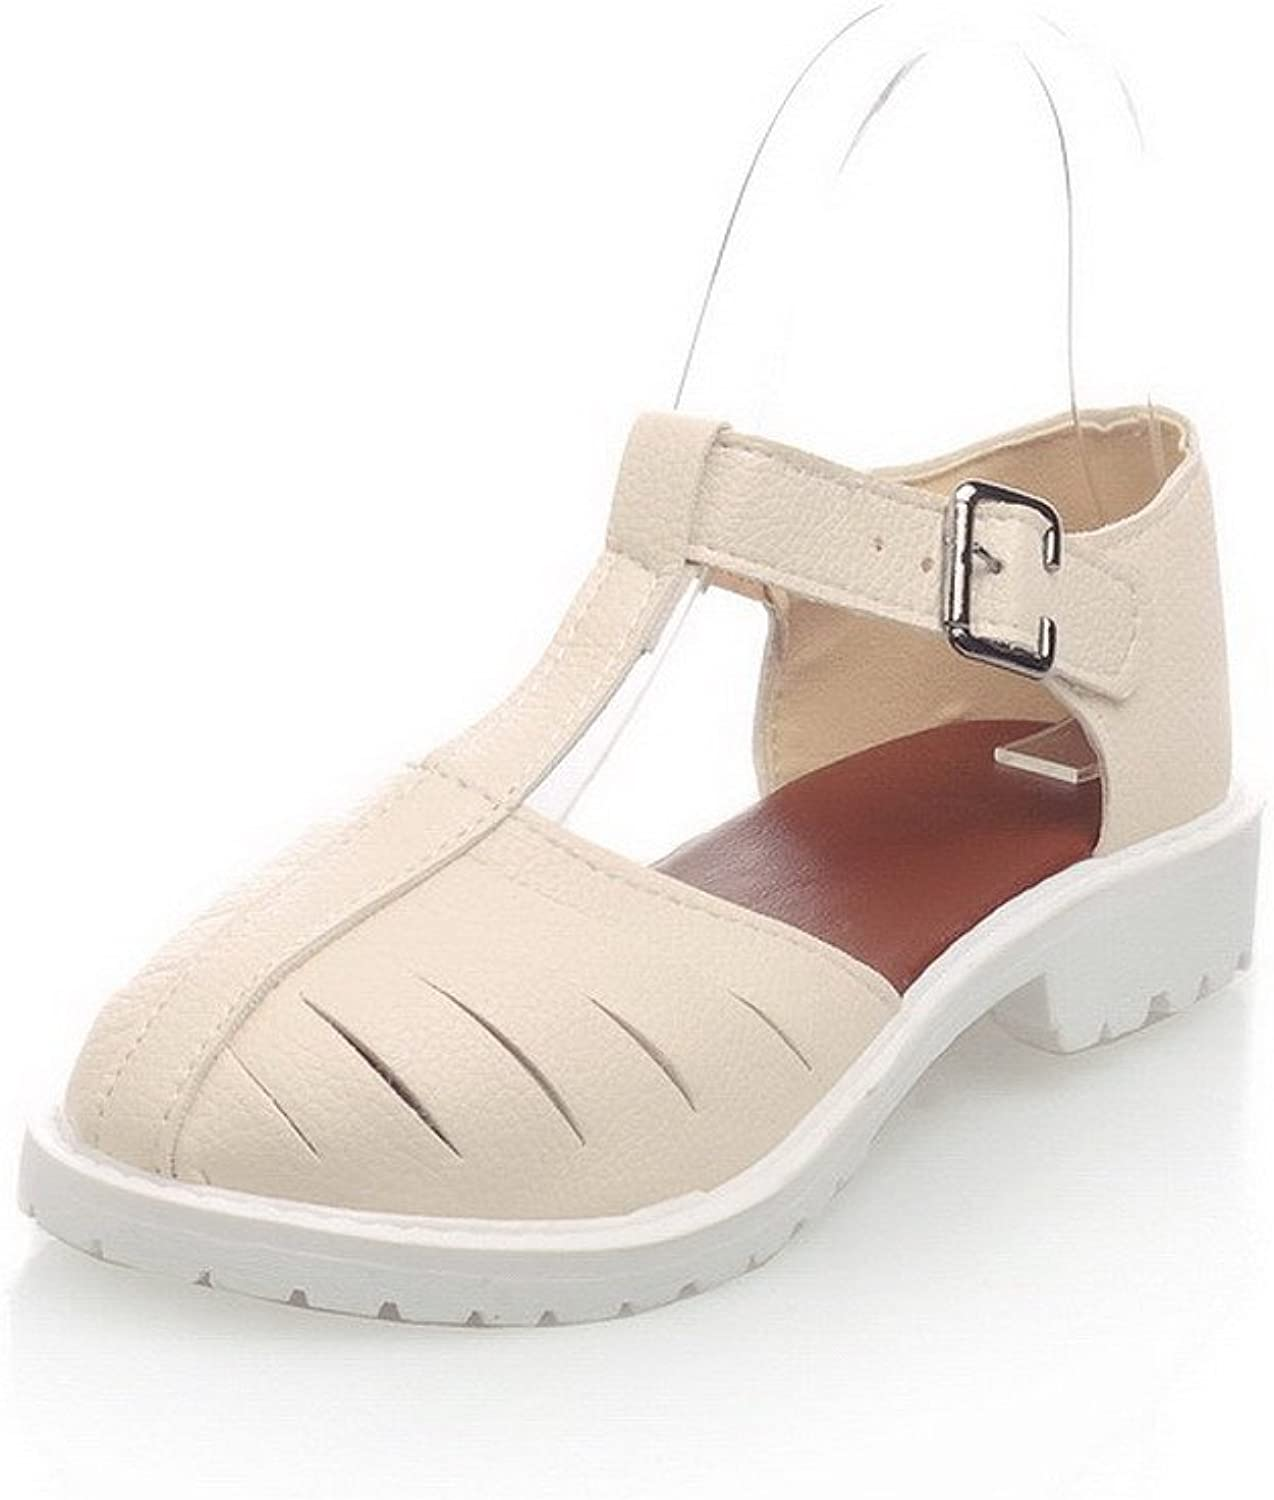 WeiPoot Women's Low-Heels Solid Buckle Soft Material Closed Toe Sandals